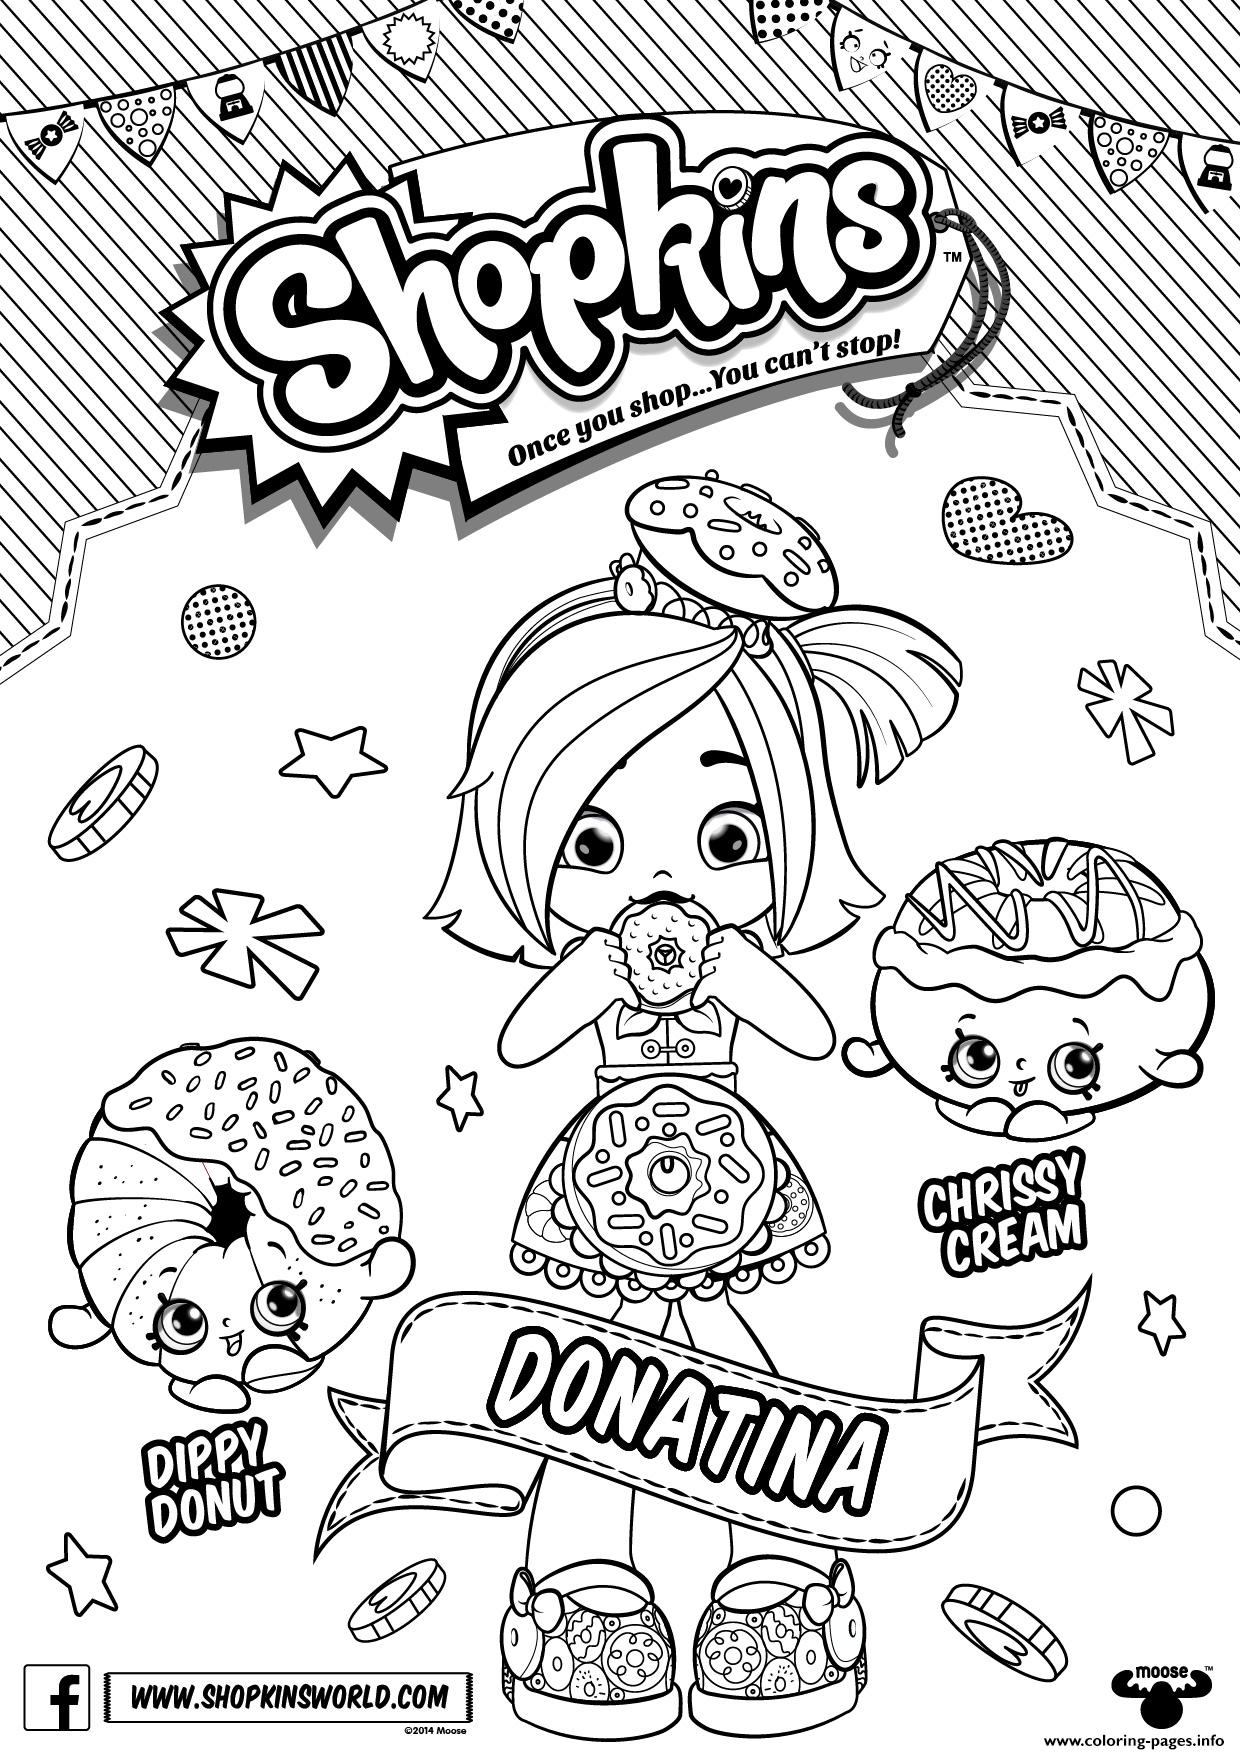 shopkins season 6 doll chef club donatina coloring pages printable